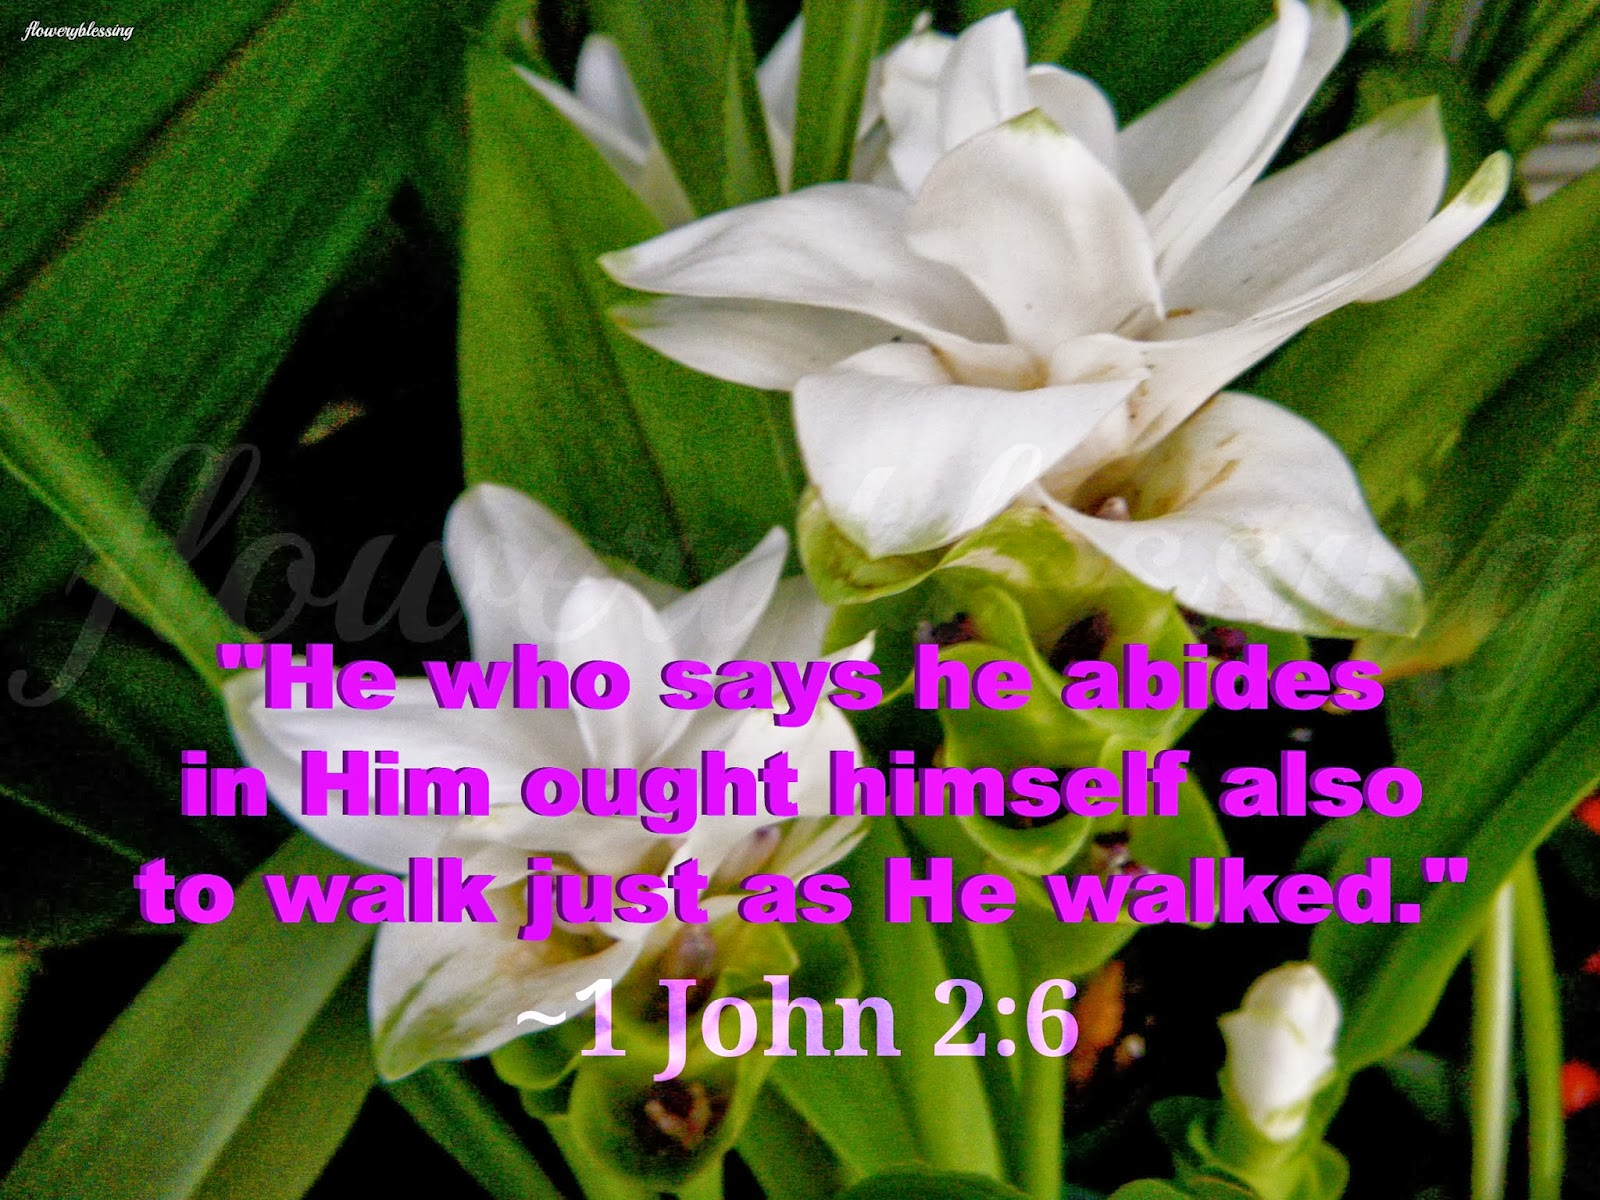 flowery blessing he who says he abides in him ought himself also